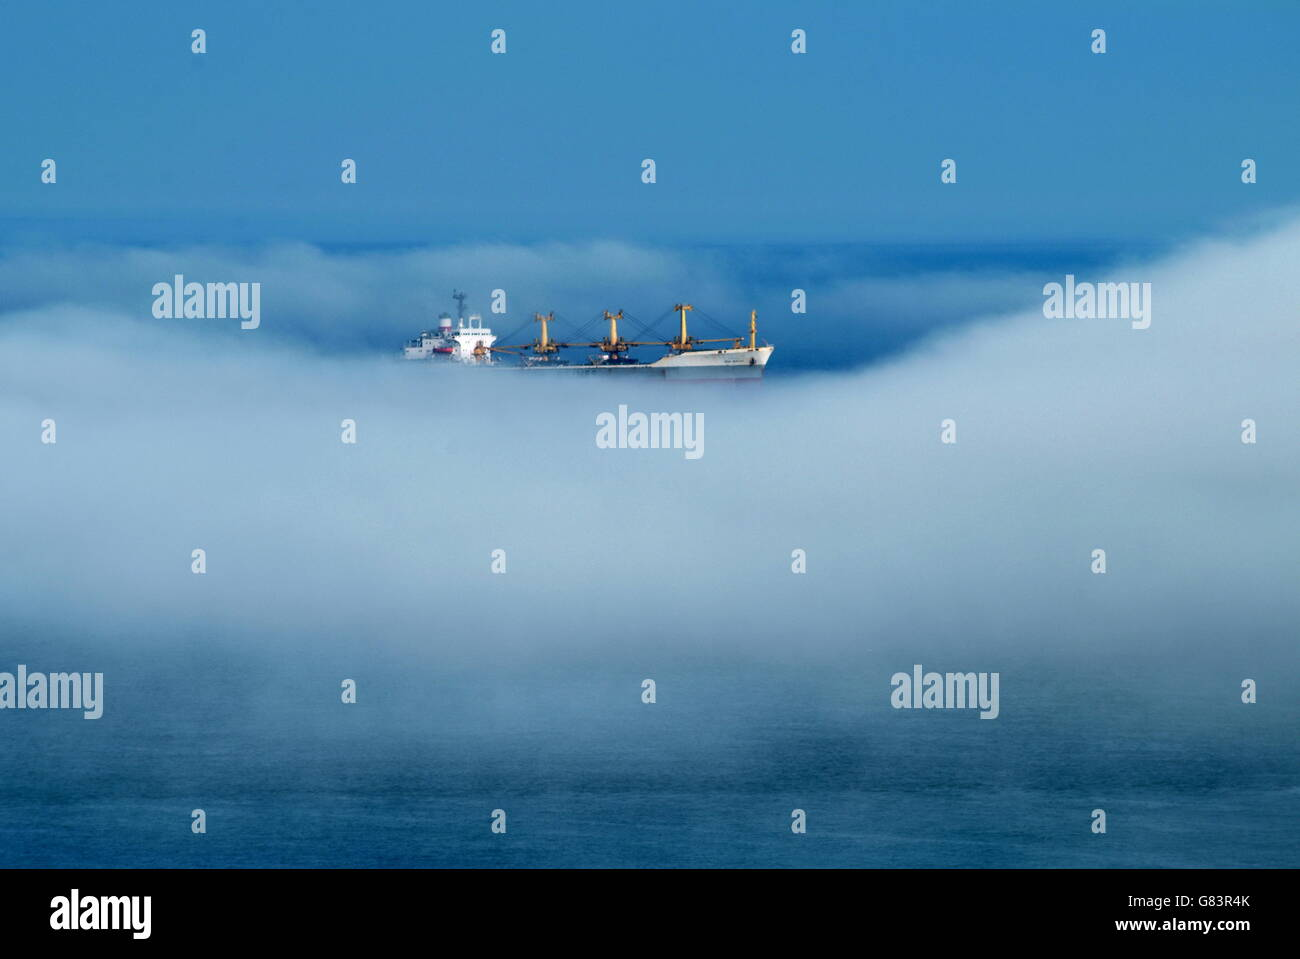 Ship in the clouds. A freighter, enveloped in fog appears to float in the sky on a sea of mist Stock Photo